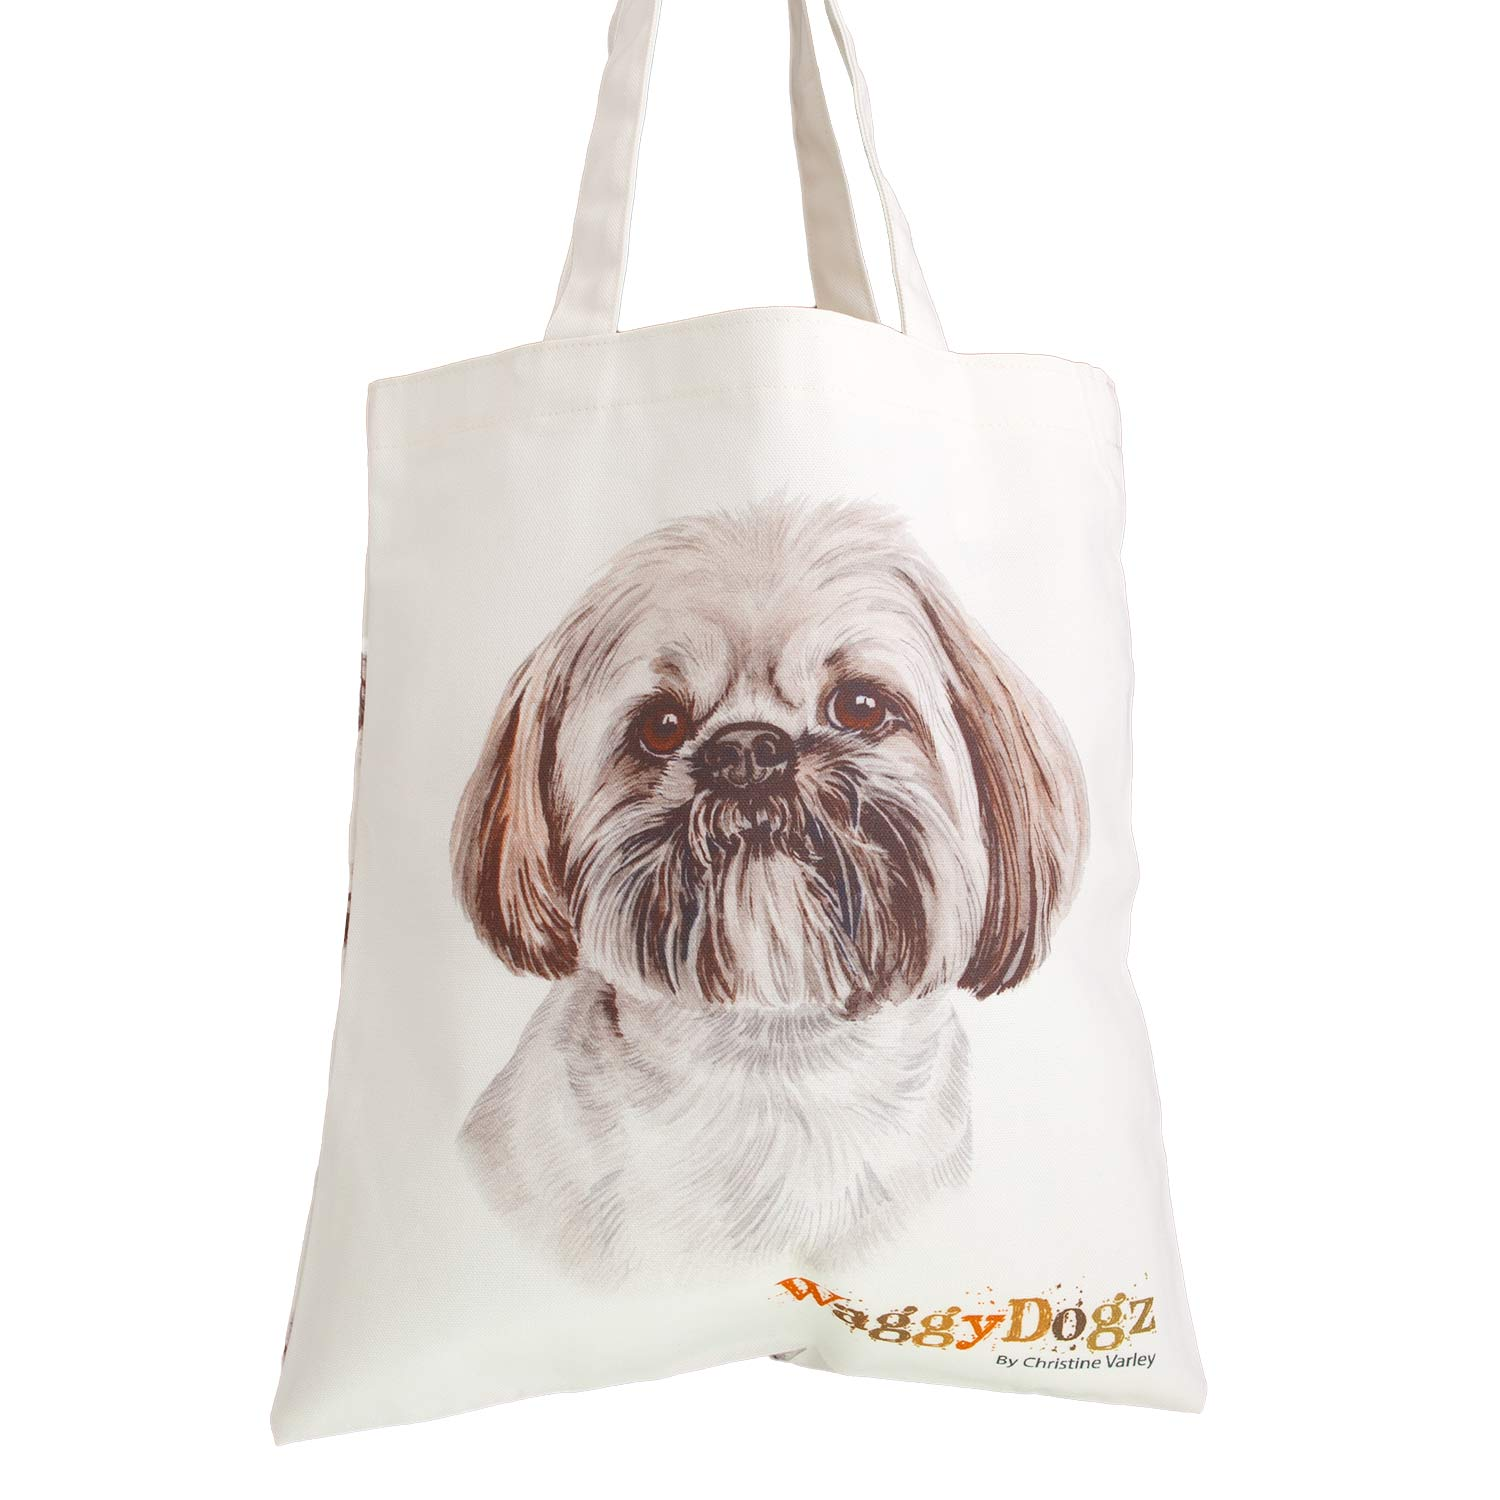 Dog Lover Gifts available at Dog Krazy Gifts. Lhasa Apso Bag, part of our Christine Varley collection – available at www.dogkrazygifts.co.uk A Double Sided organic Cotton Tote bag featuring a painting of a Lhasa Apso Dog by Christine Varley, made and printed in Great Britain